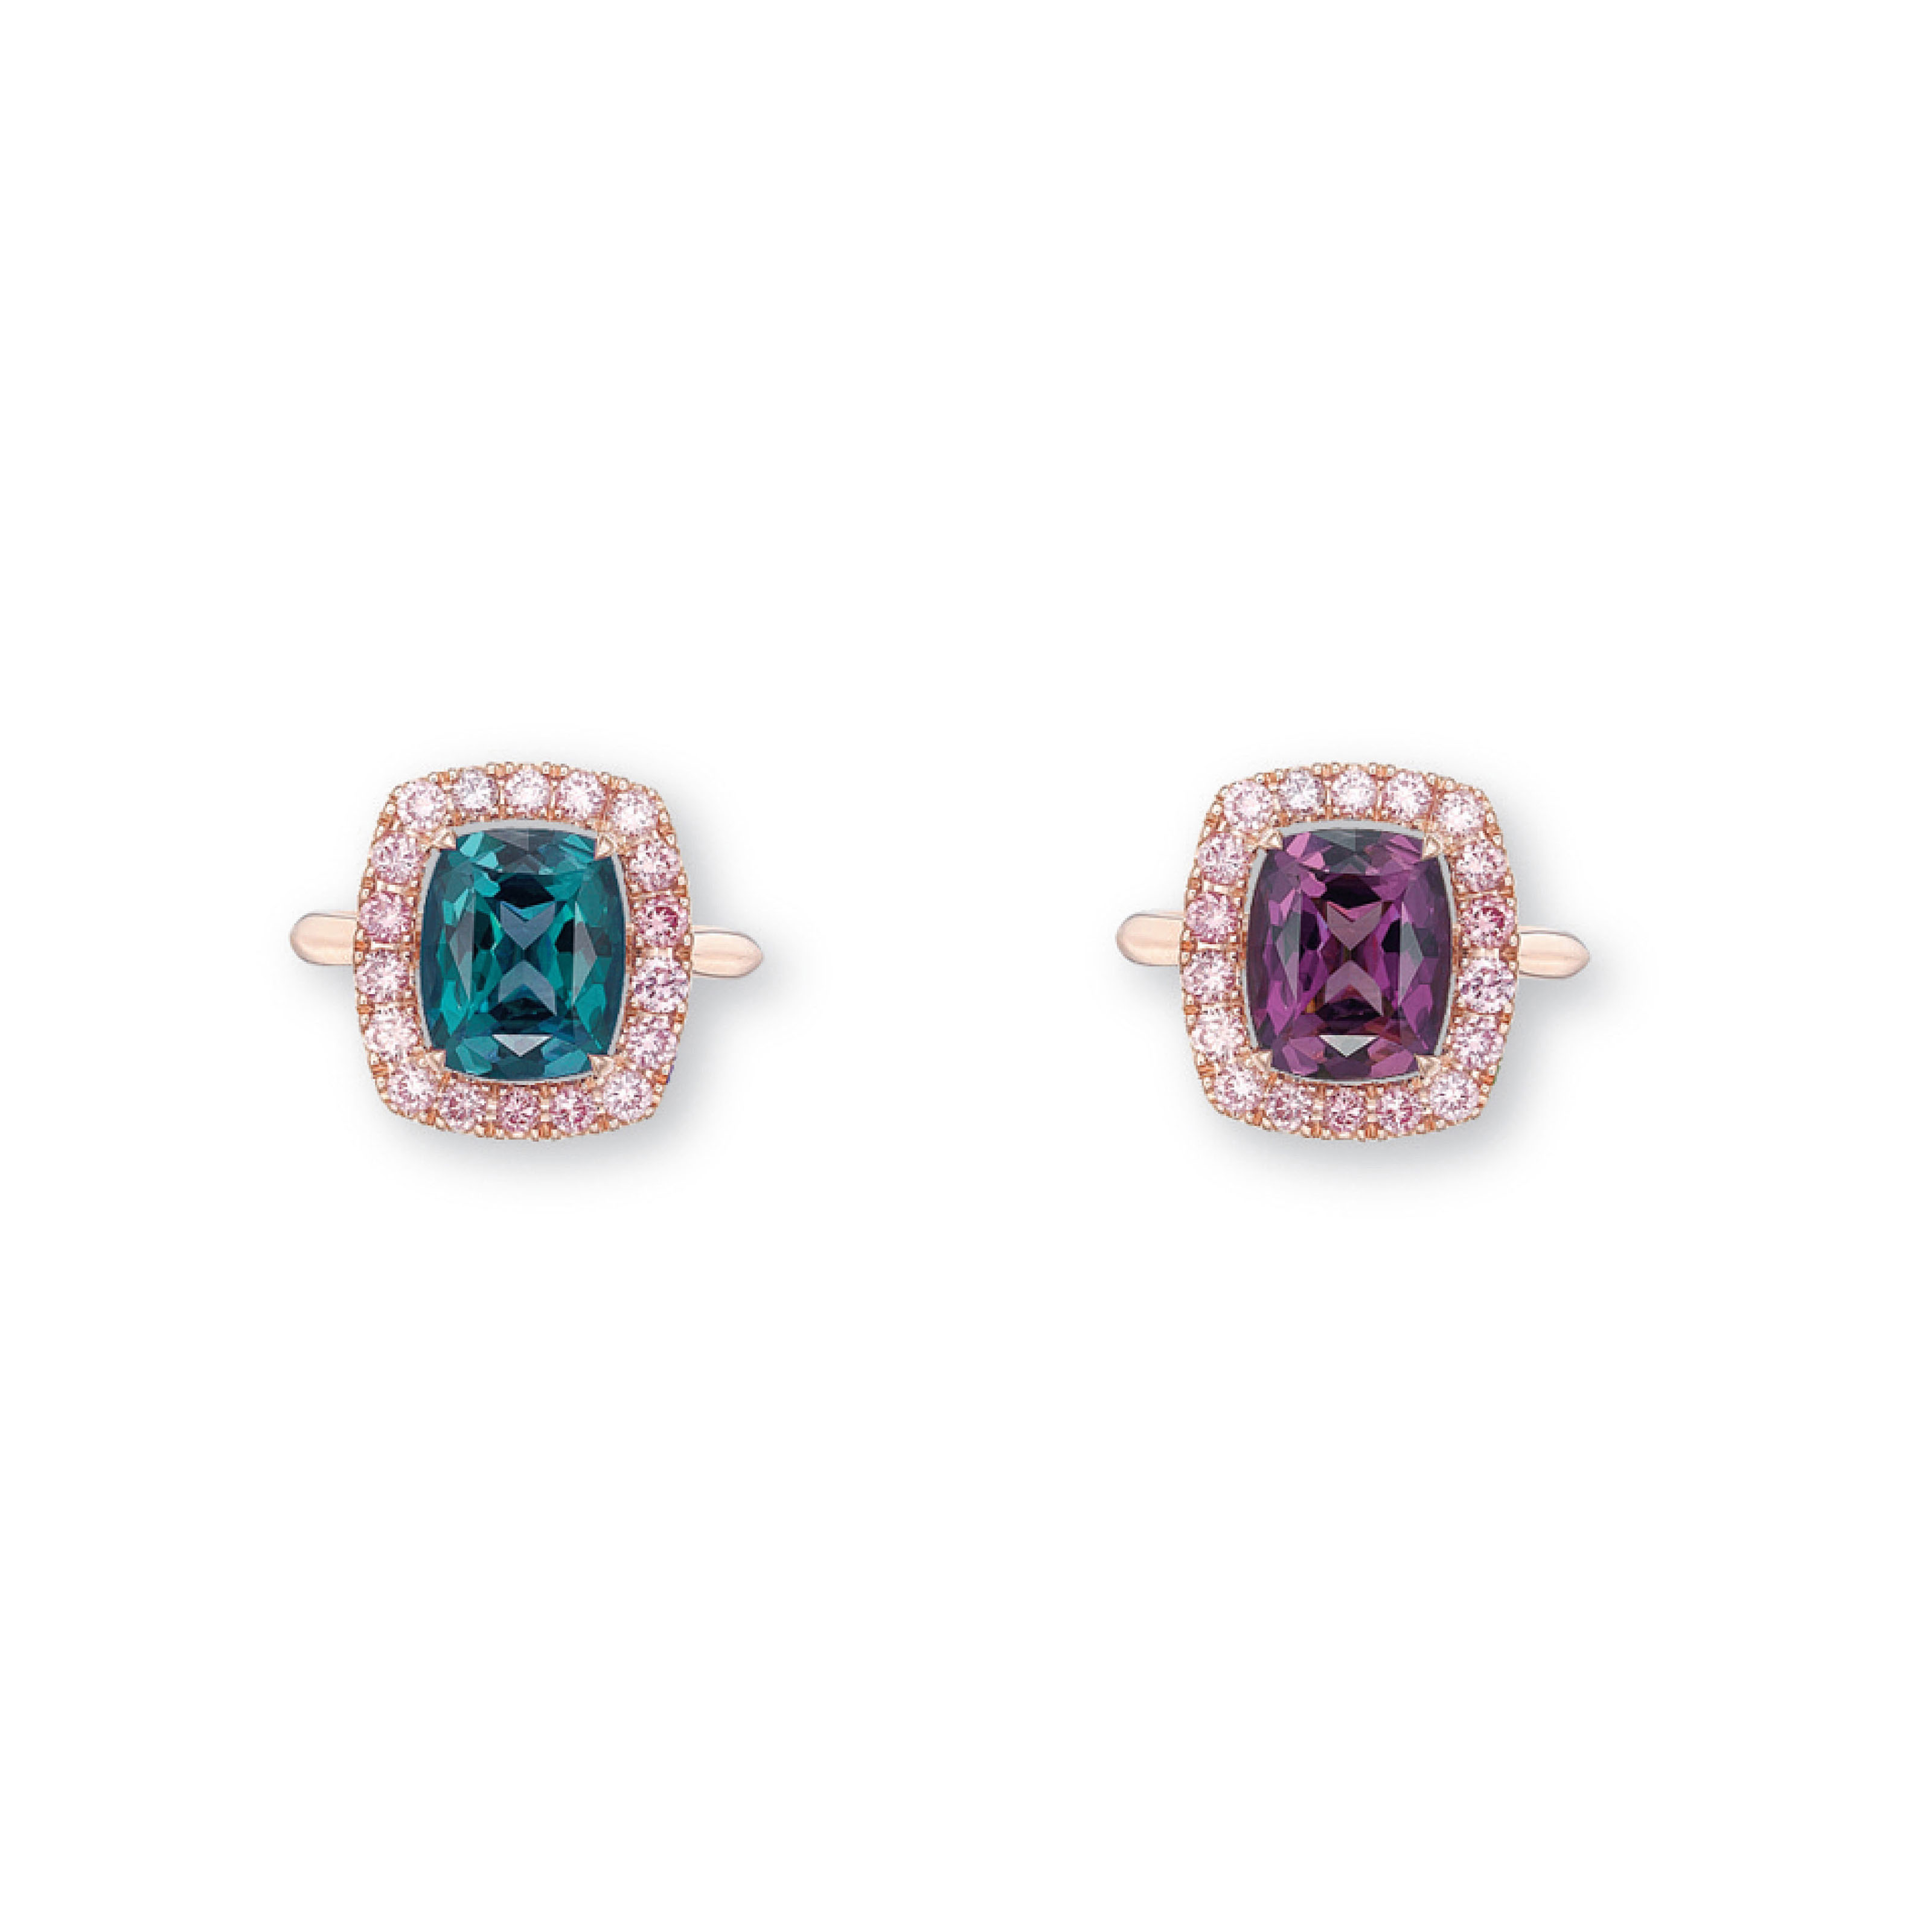 AN ALEXANDRITE AND COLOURED DIAMOND RING, BY SUWA